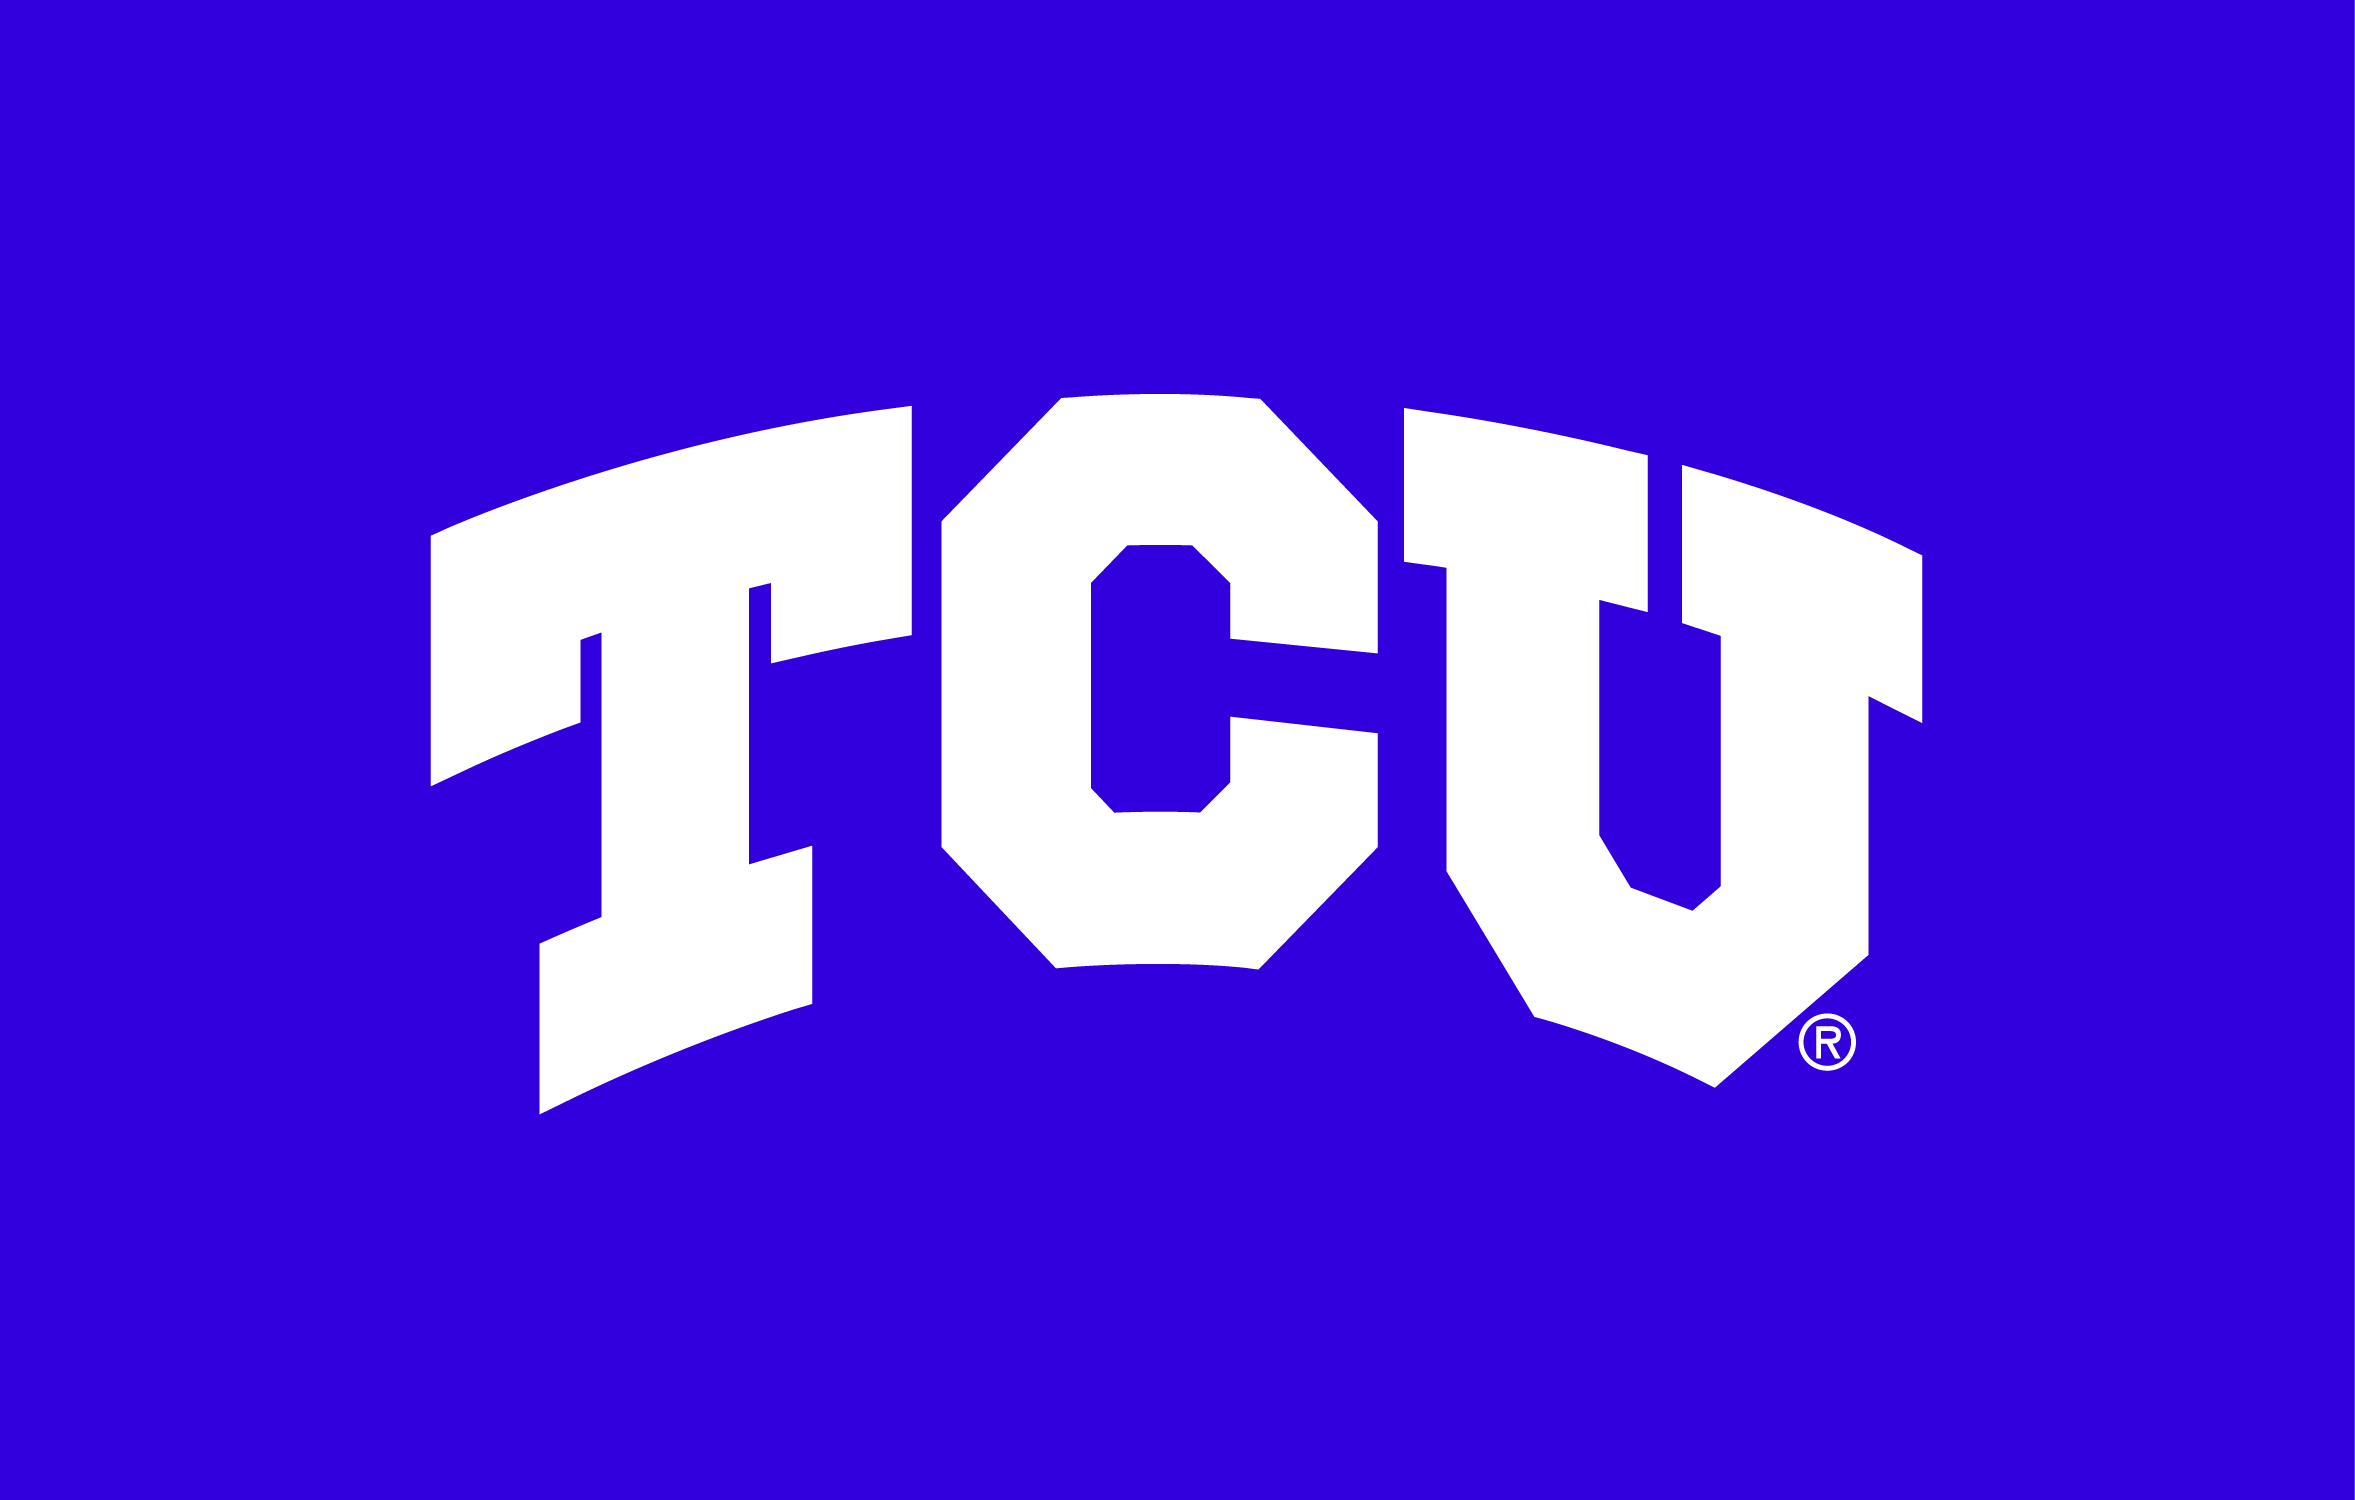 TCULogo_reversed_purple_5X7.jpg